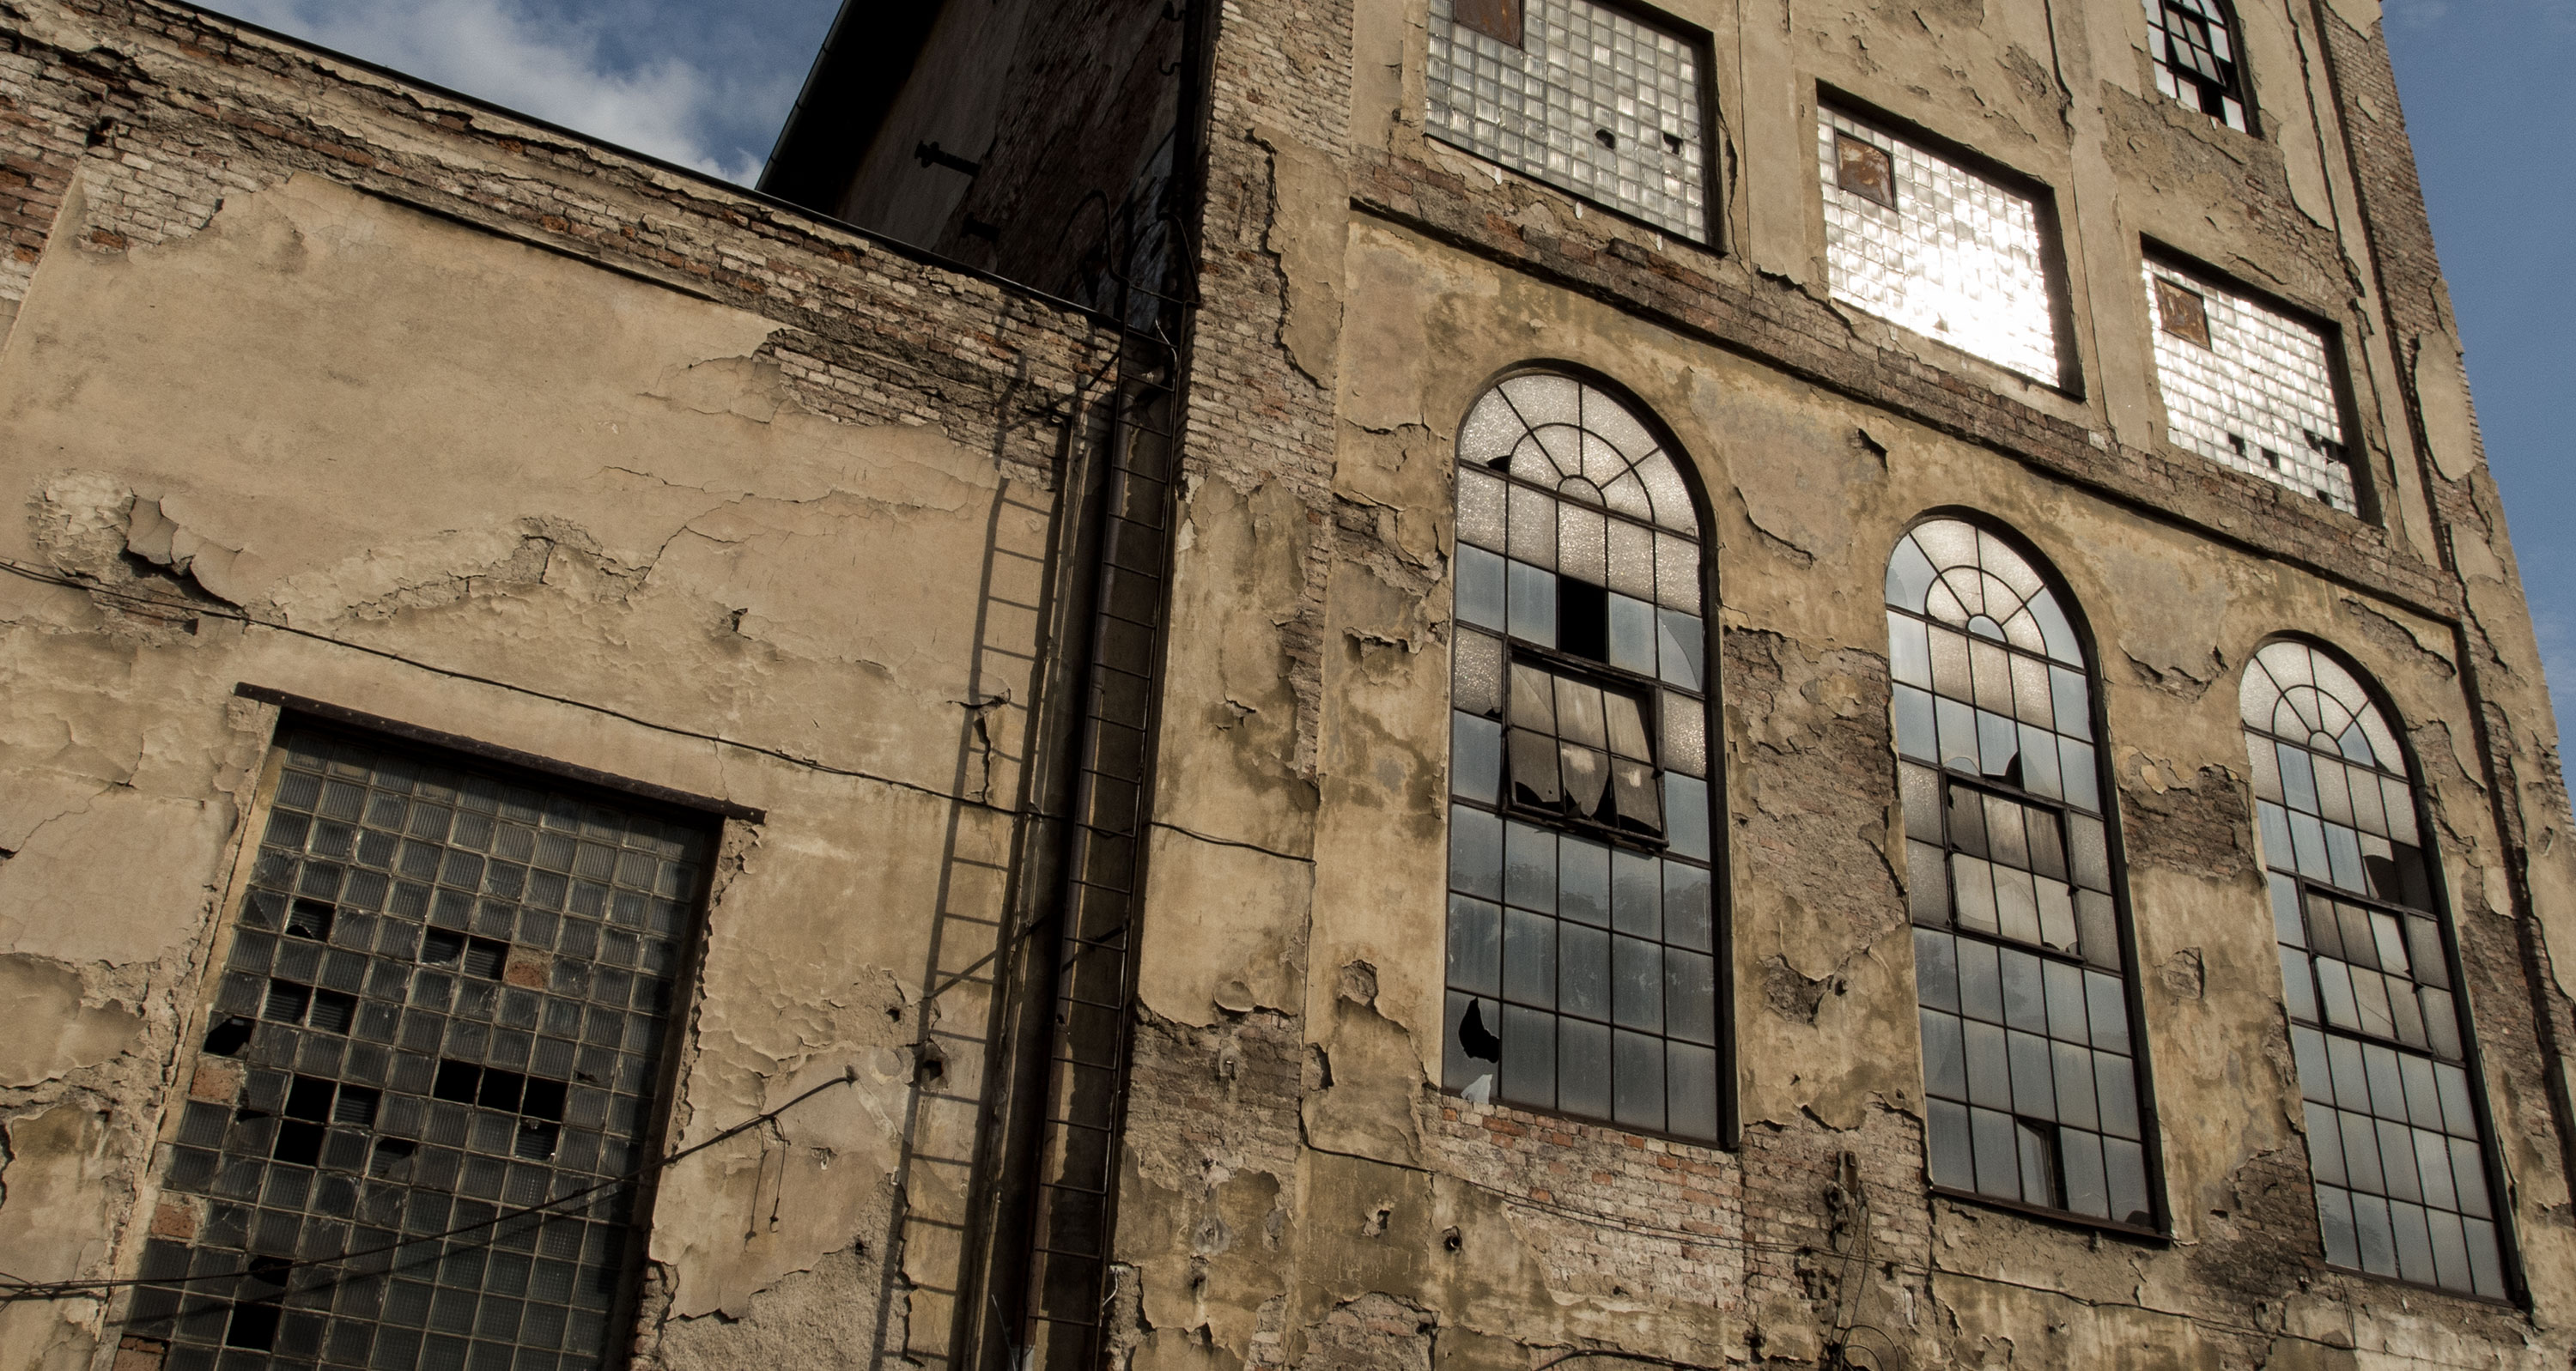 Free Image: Old Factory Building | Libreshot Public Domain Photos